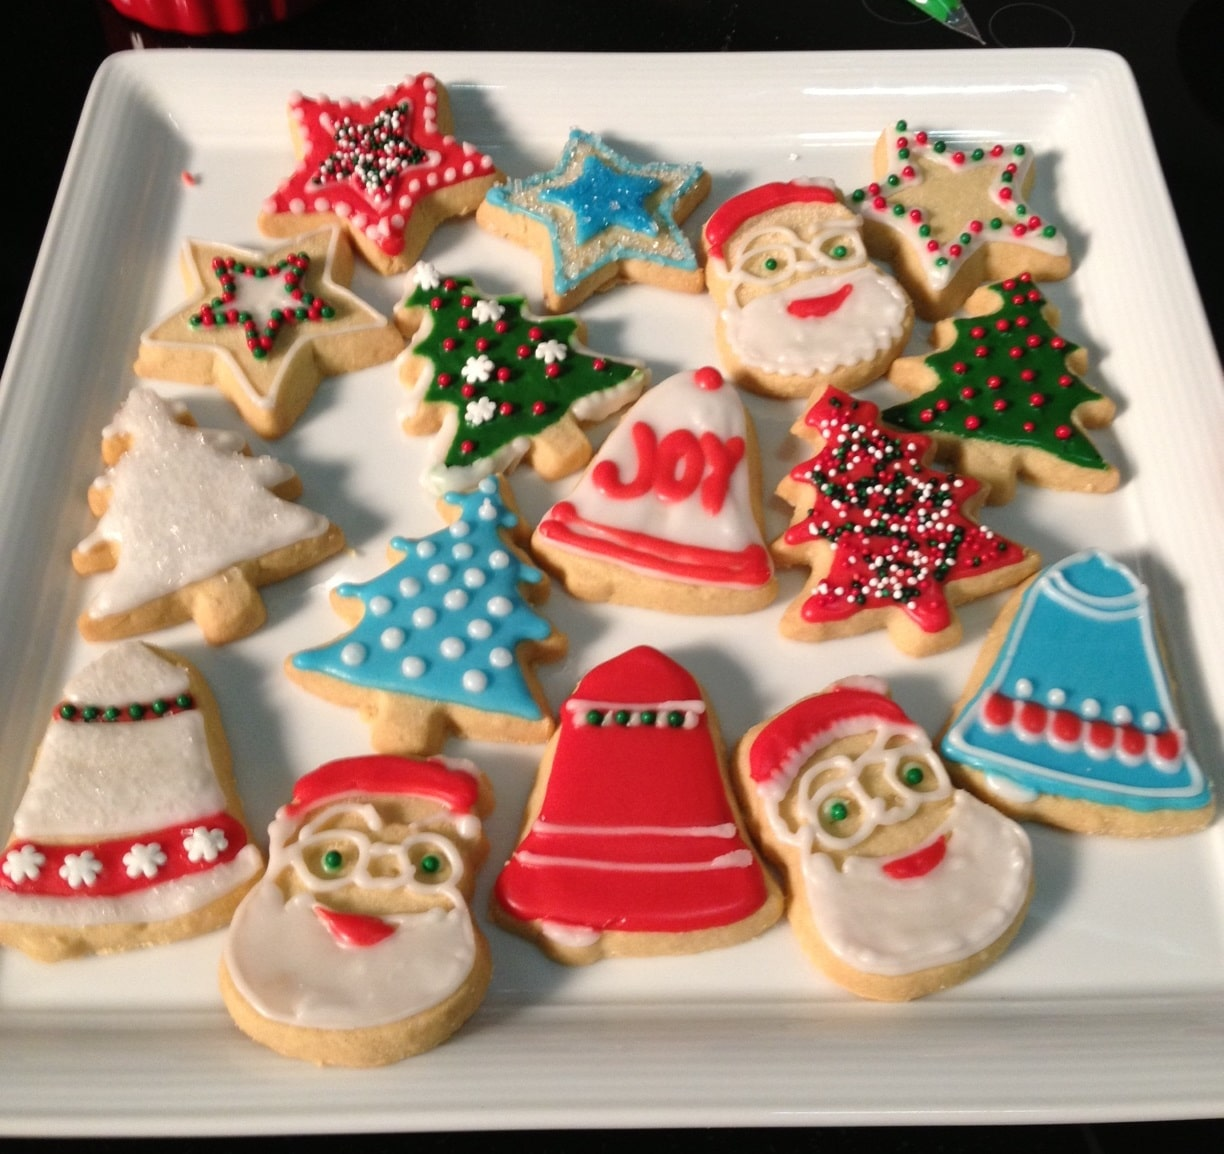 Decorative Cookie Icing